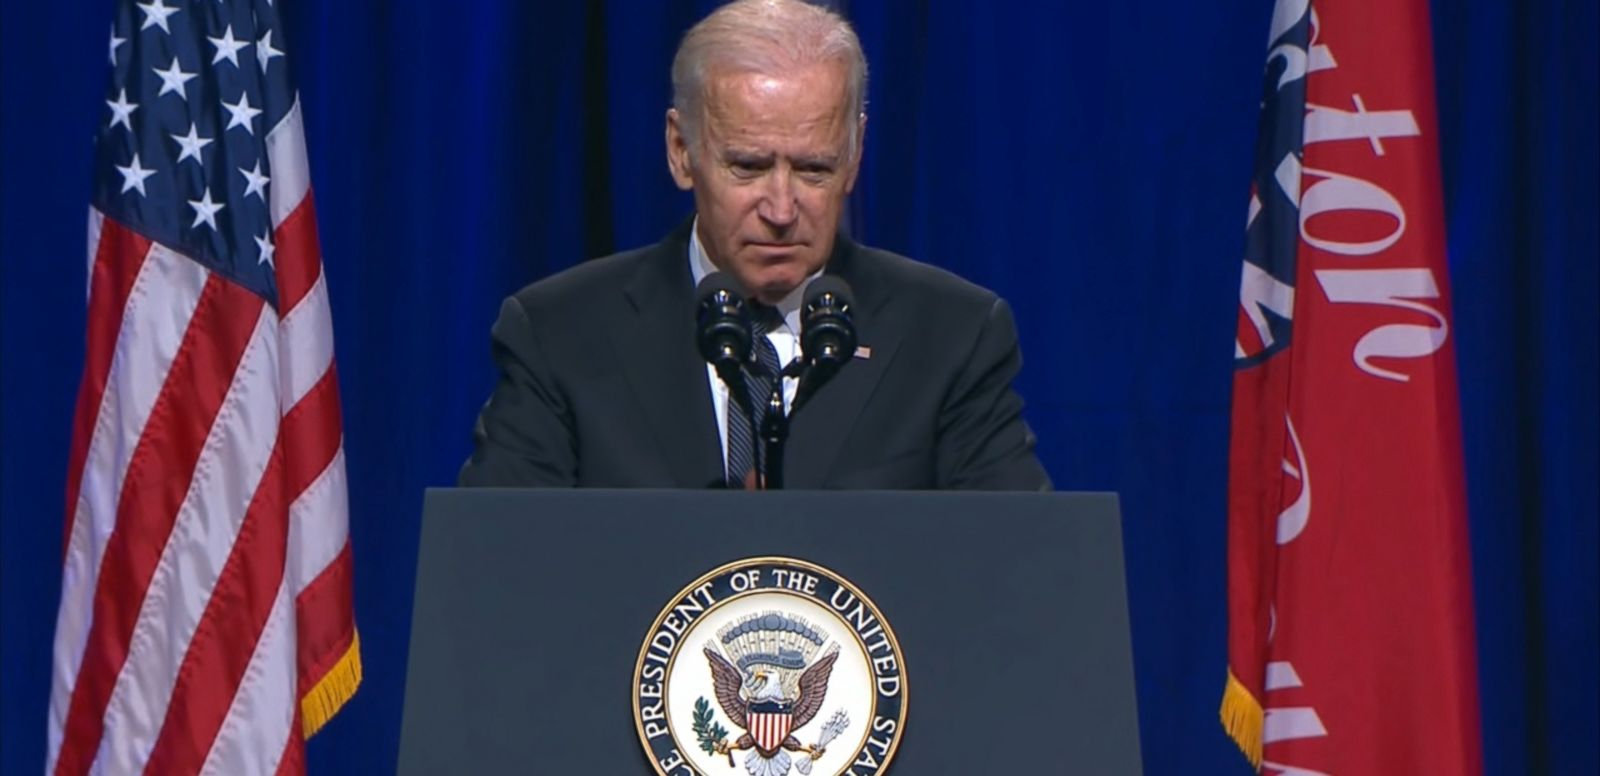 Joe Biden delivered a somber address to the families of the three police officers shot and killed - and another fighting for his life - in Baton Rouge, Louisiana.